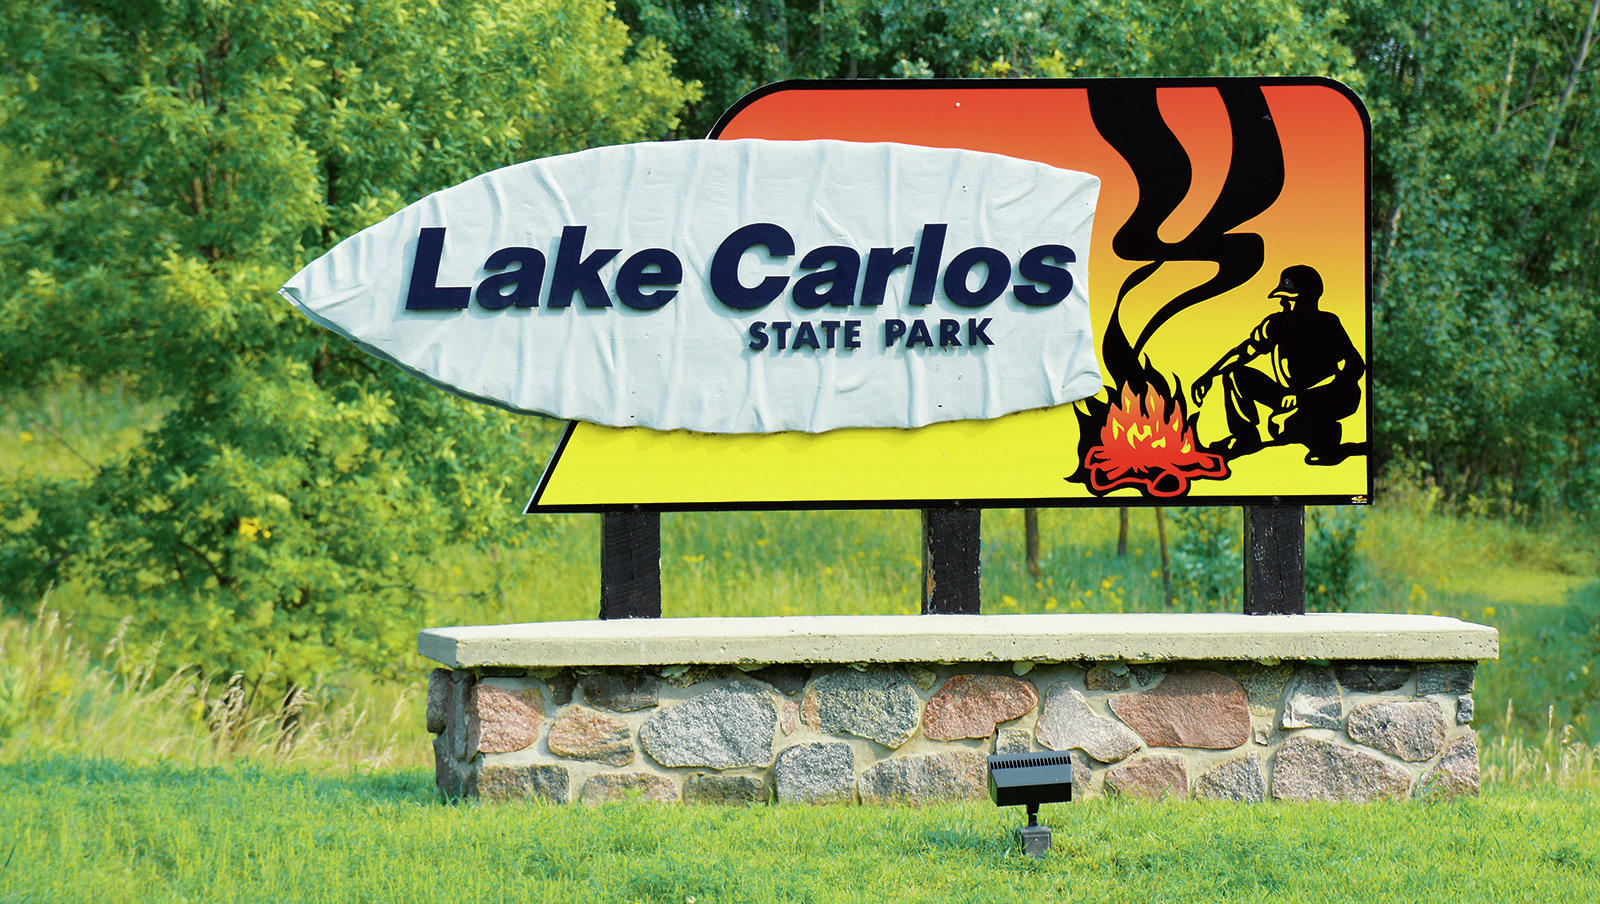 Lake Carlos State Park, approximately 10 miles north of Alexandria, was the second-most popular state park in Minnesota to camp in 2018. (Echo Press file photo)